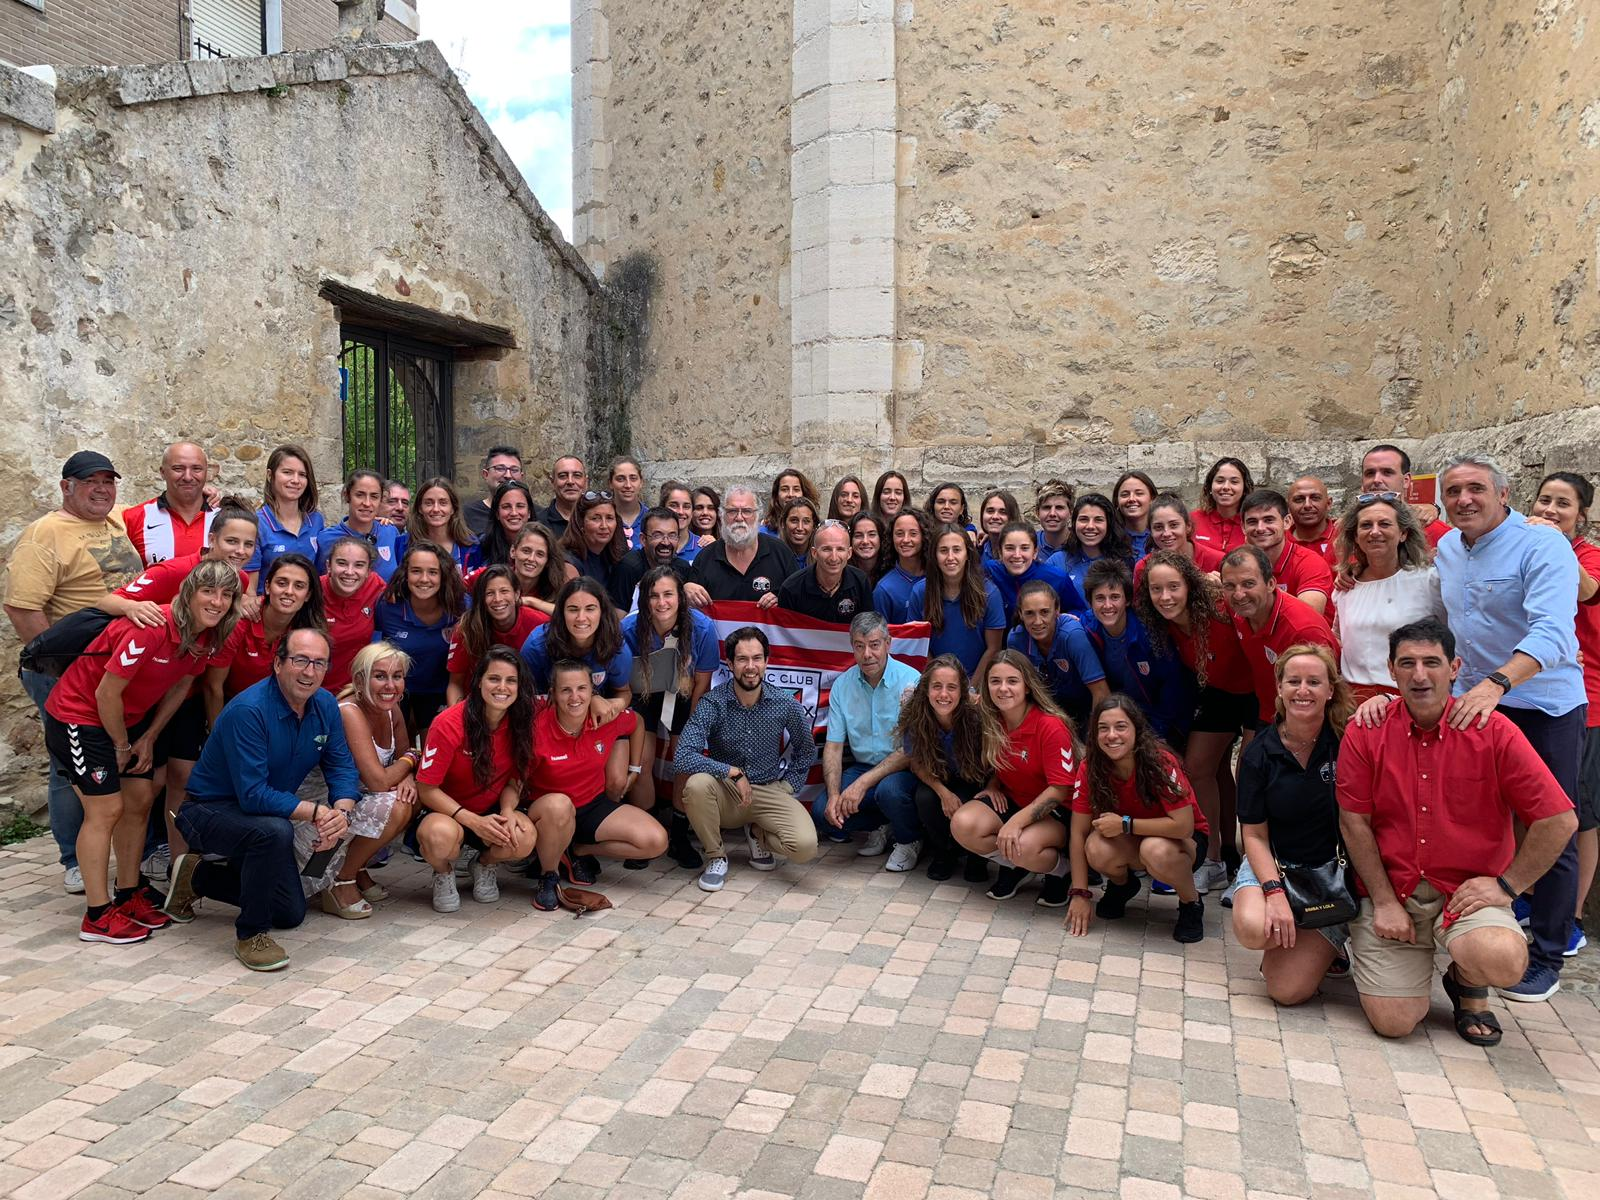 The Peña of Medina de Pomar, with the Athletic Club ladies' team